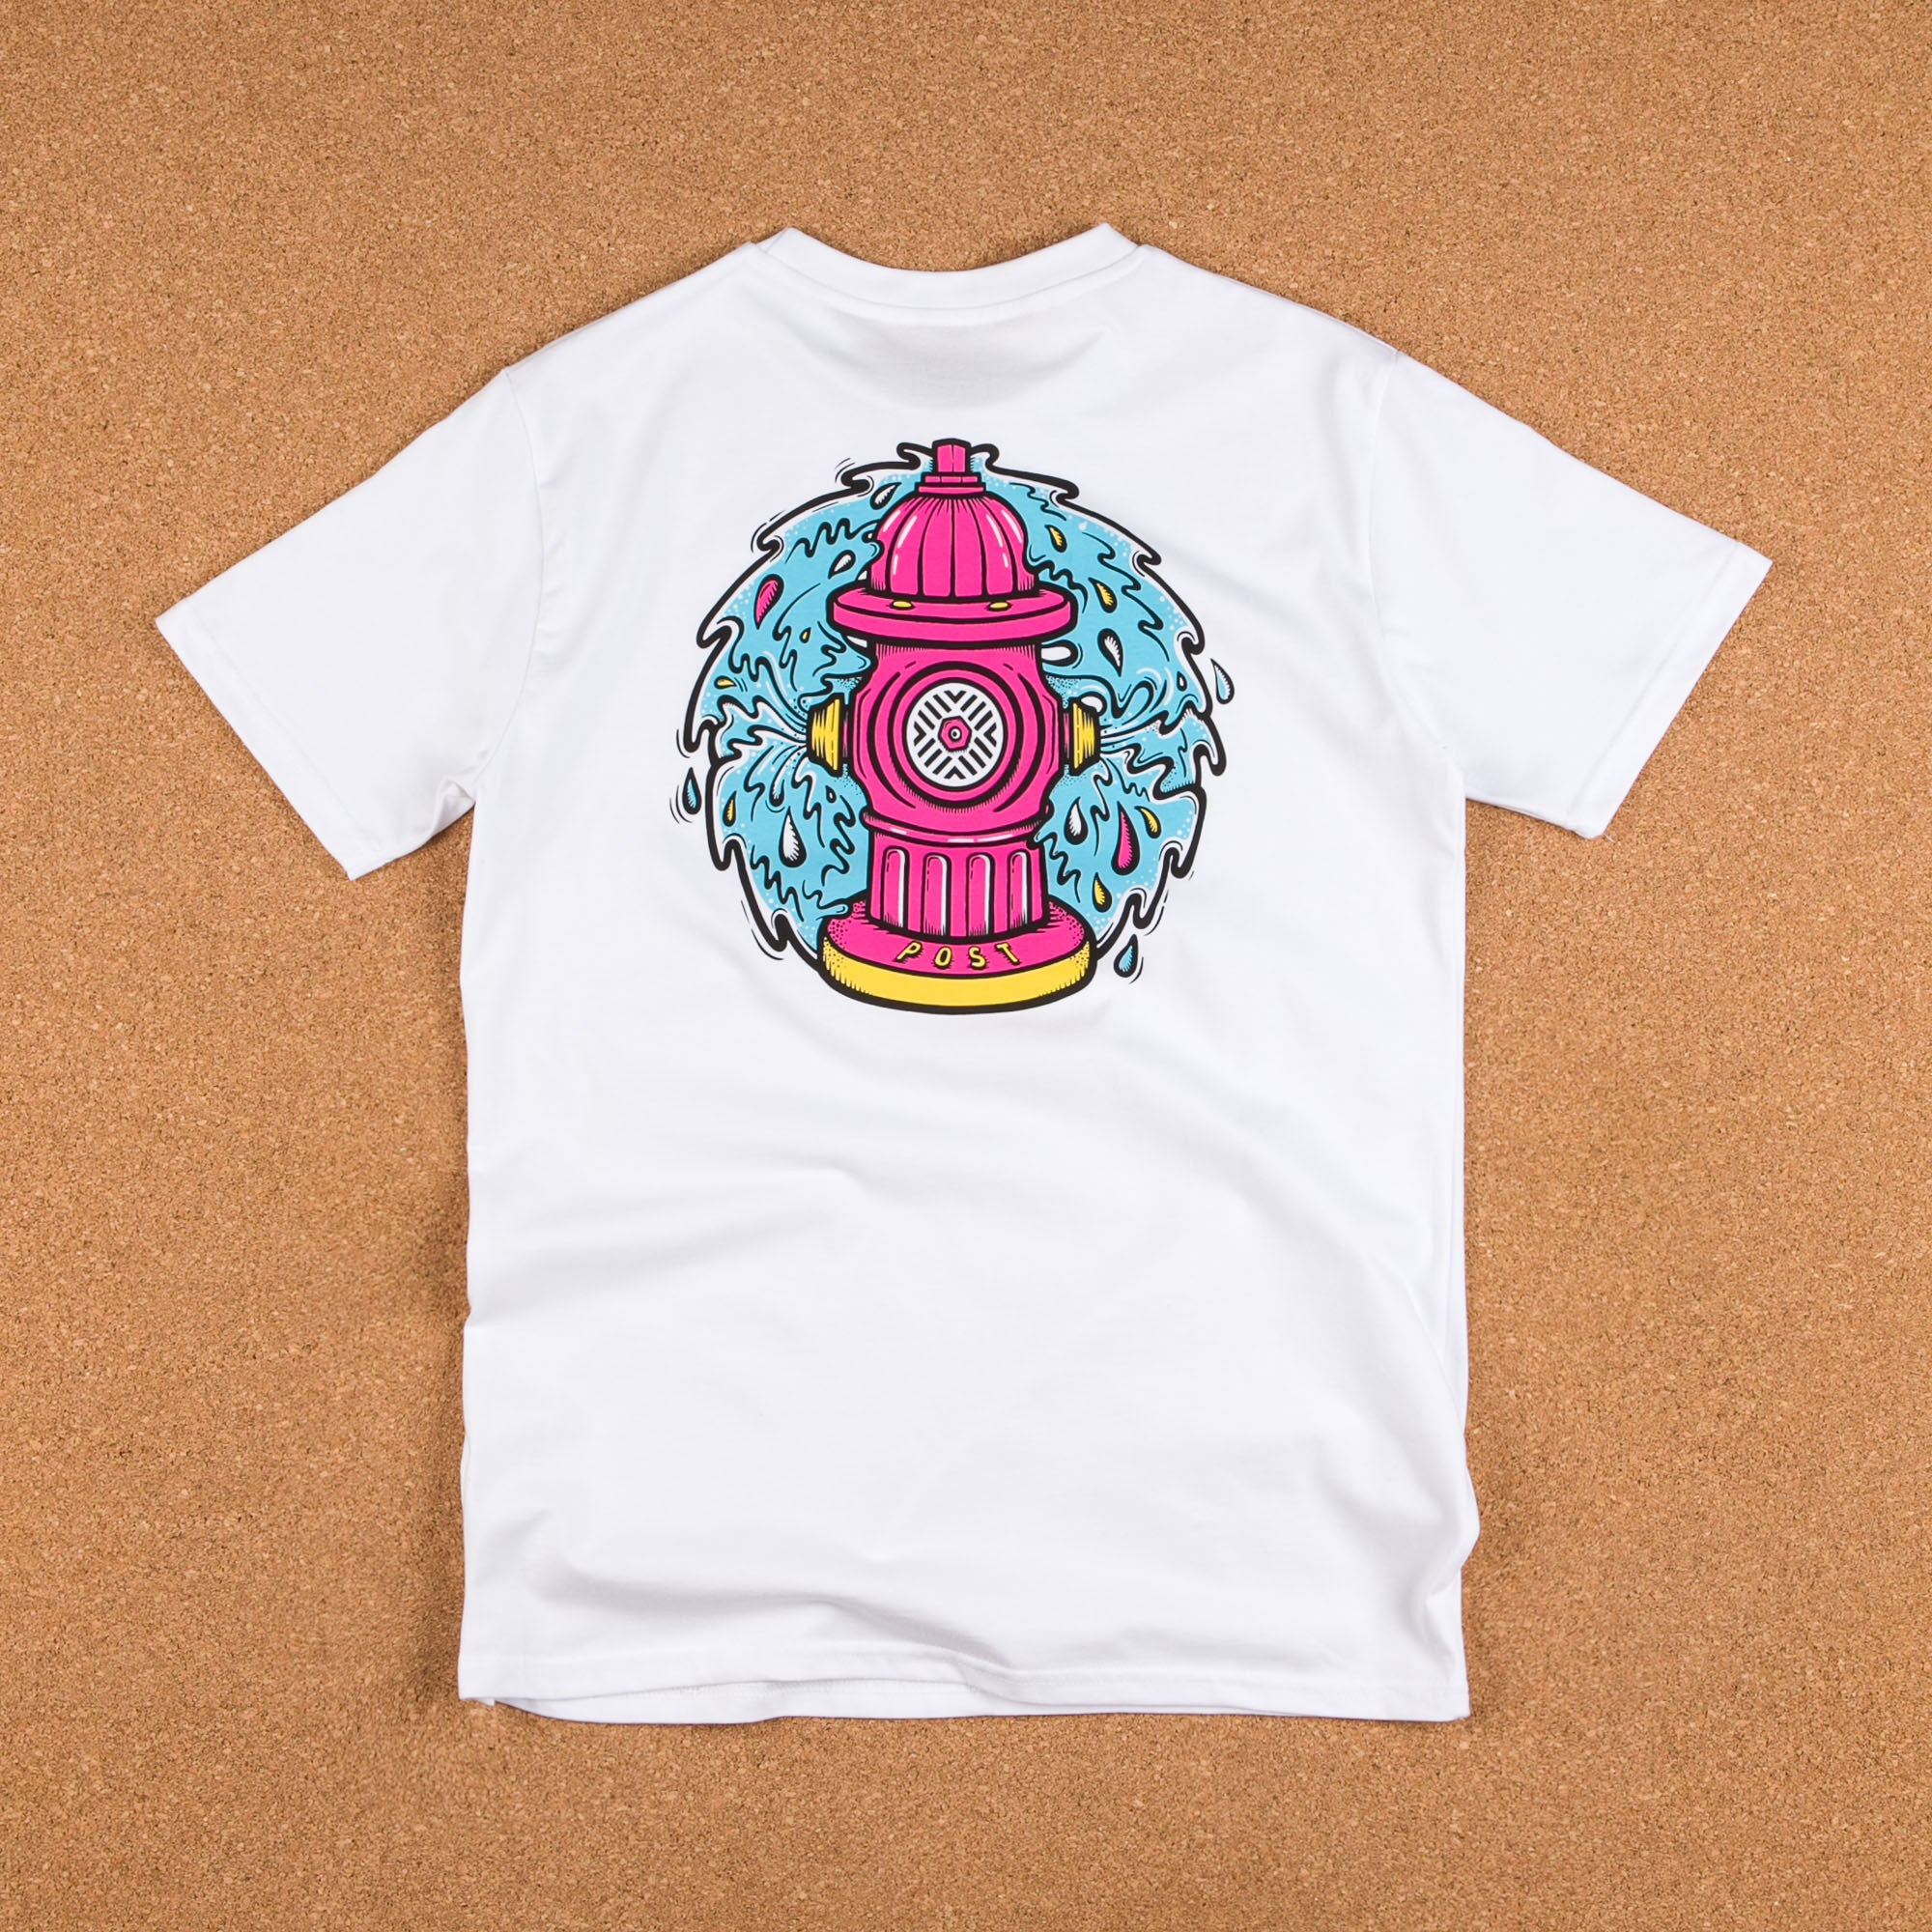 Post Details Decades Splatter Hydrant T-Shirt - White